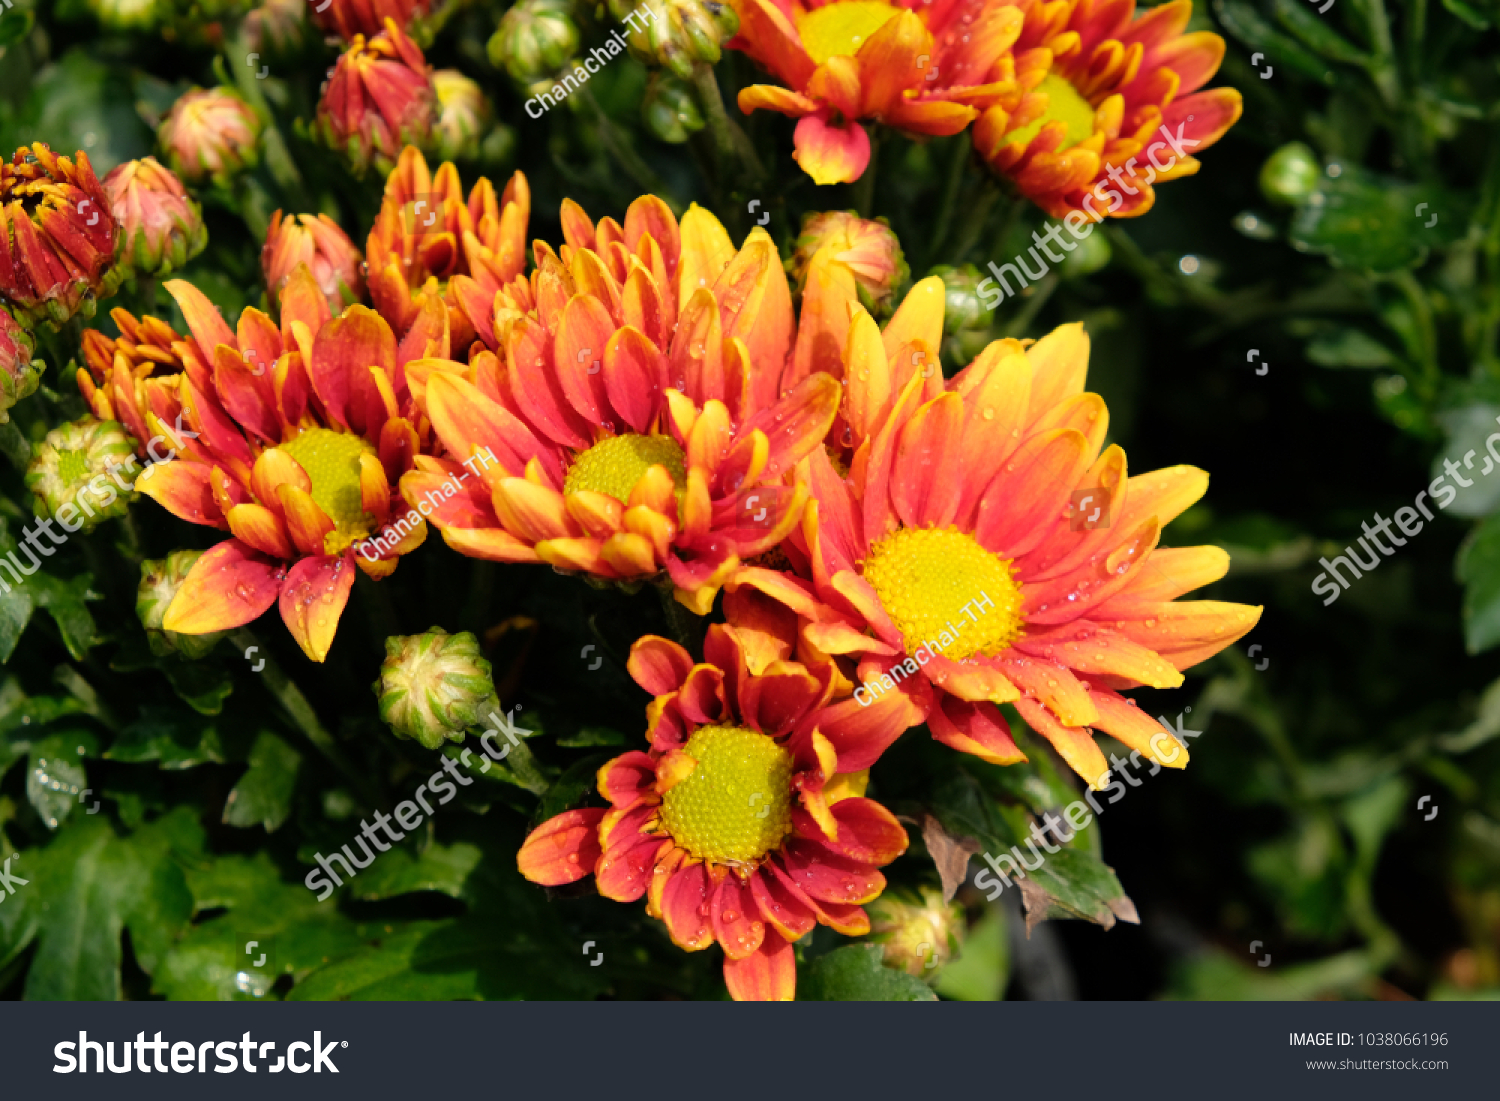 A Flowers Of Orange Toned Colorfast Double Blooms That Age Well And